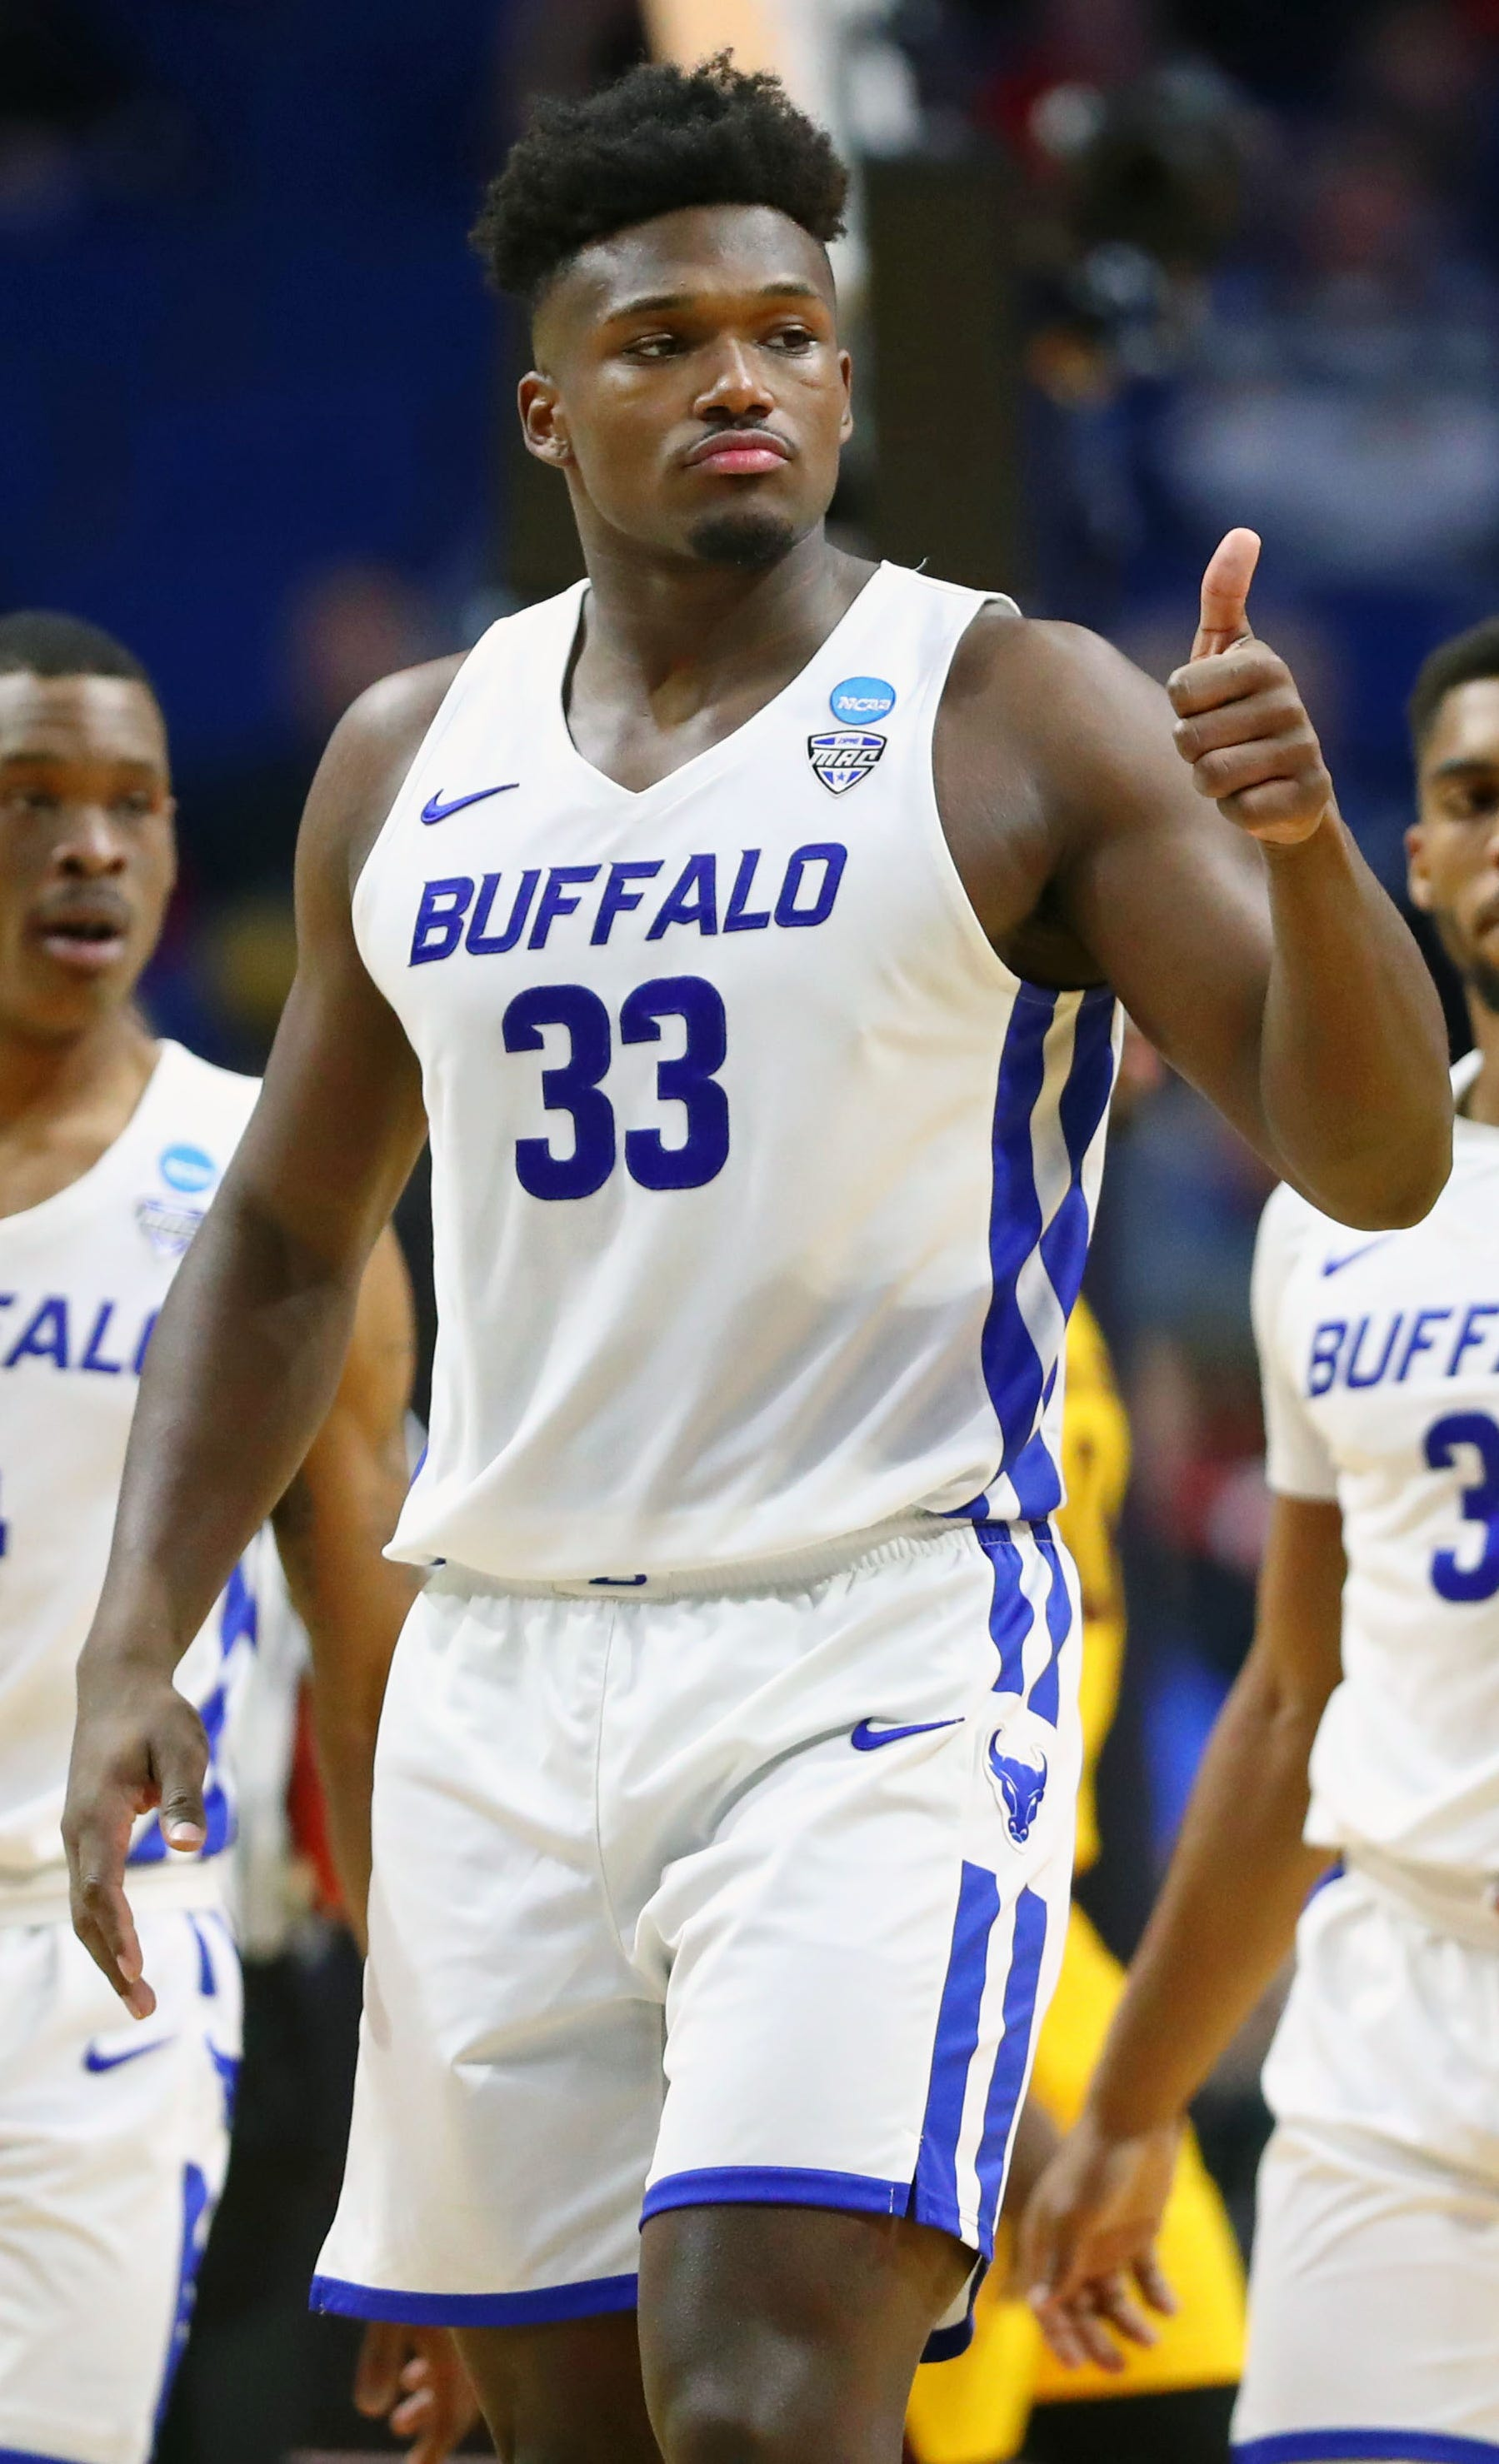 Buffalo's Nick Perkins gives a thumbs up after a play against Arizona State.